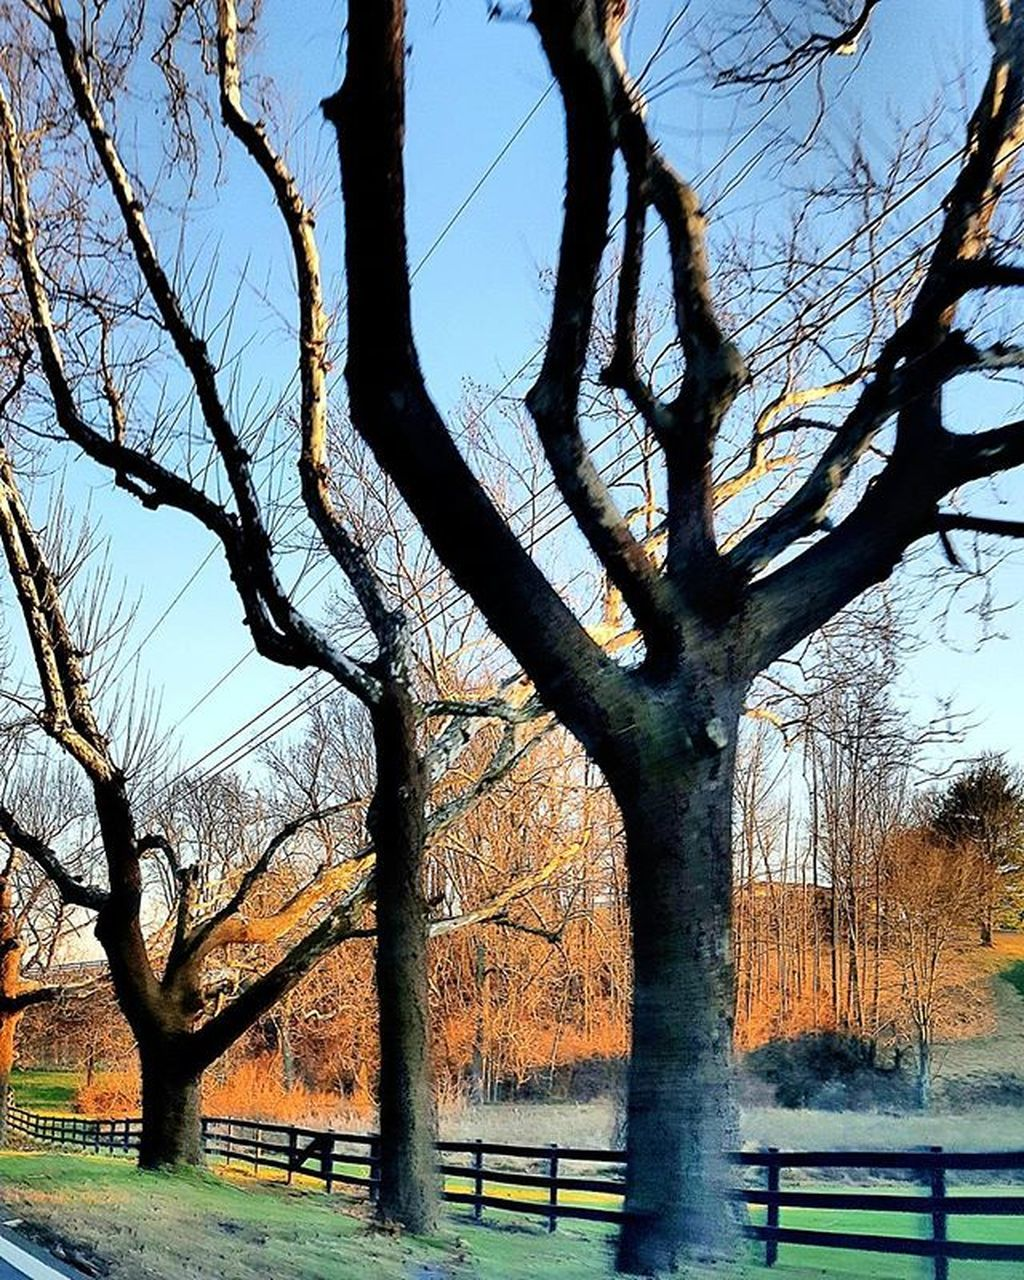 tree, bare tree, tree trunk, branch, nature, day, outdoors, growth, no people, tranquility, beauty in nature, sky